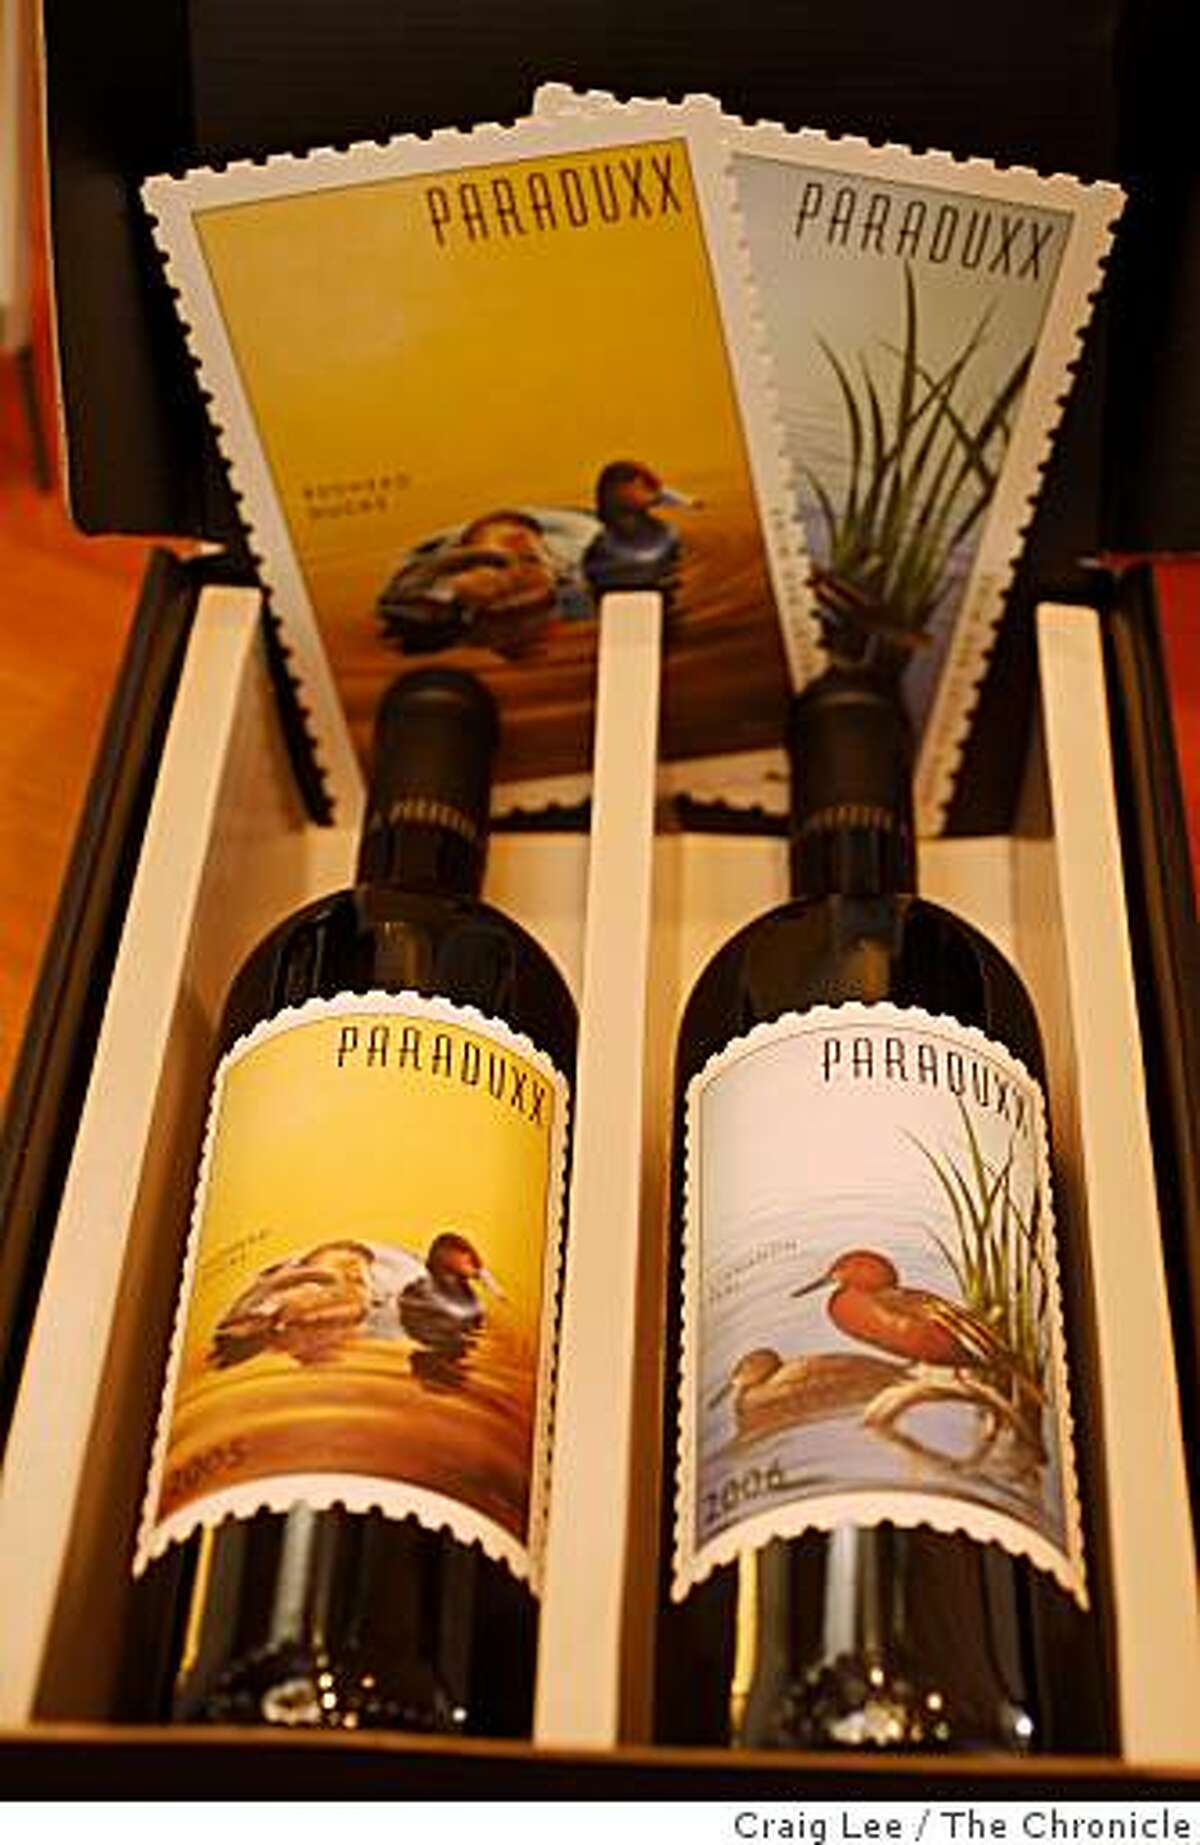 Paraduxx 2005 (left) and 2006 (right), Zinfandel and Cabernet blends at the Paraduxx tasting room in Napa, Calif., on January 9, 2009.